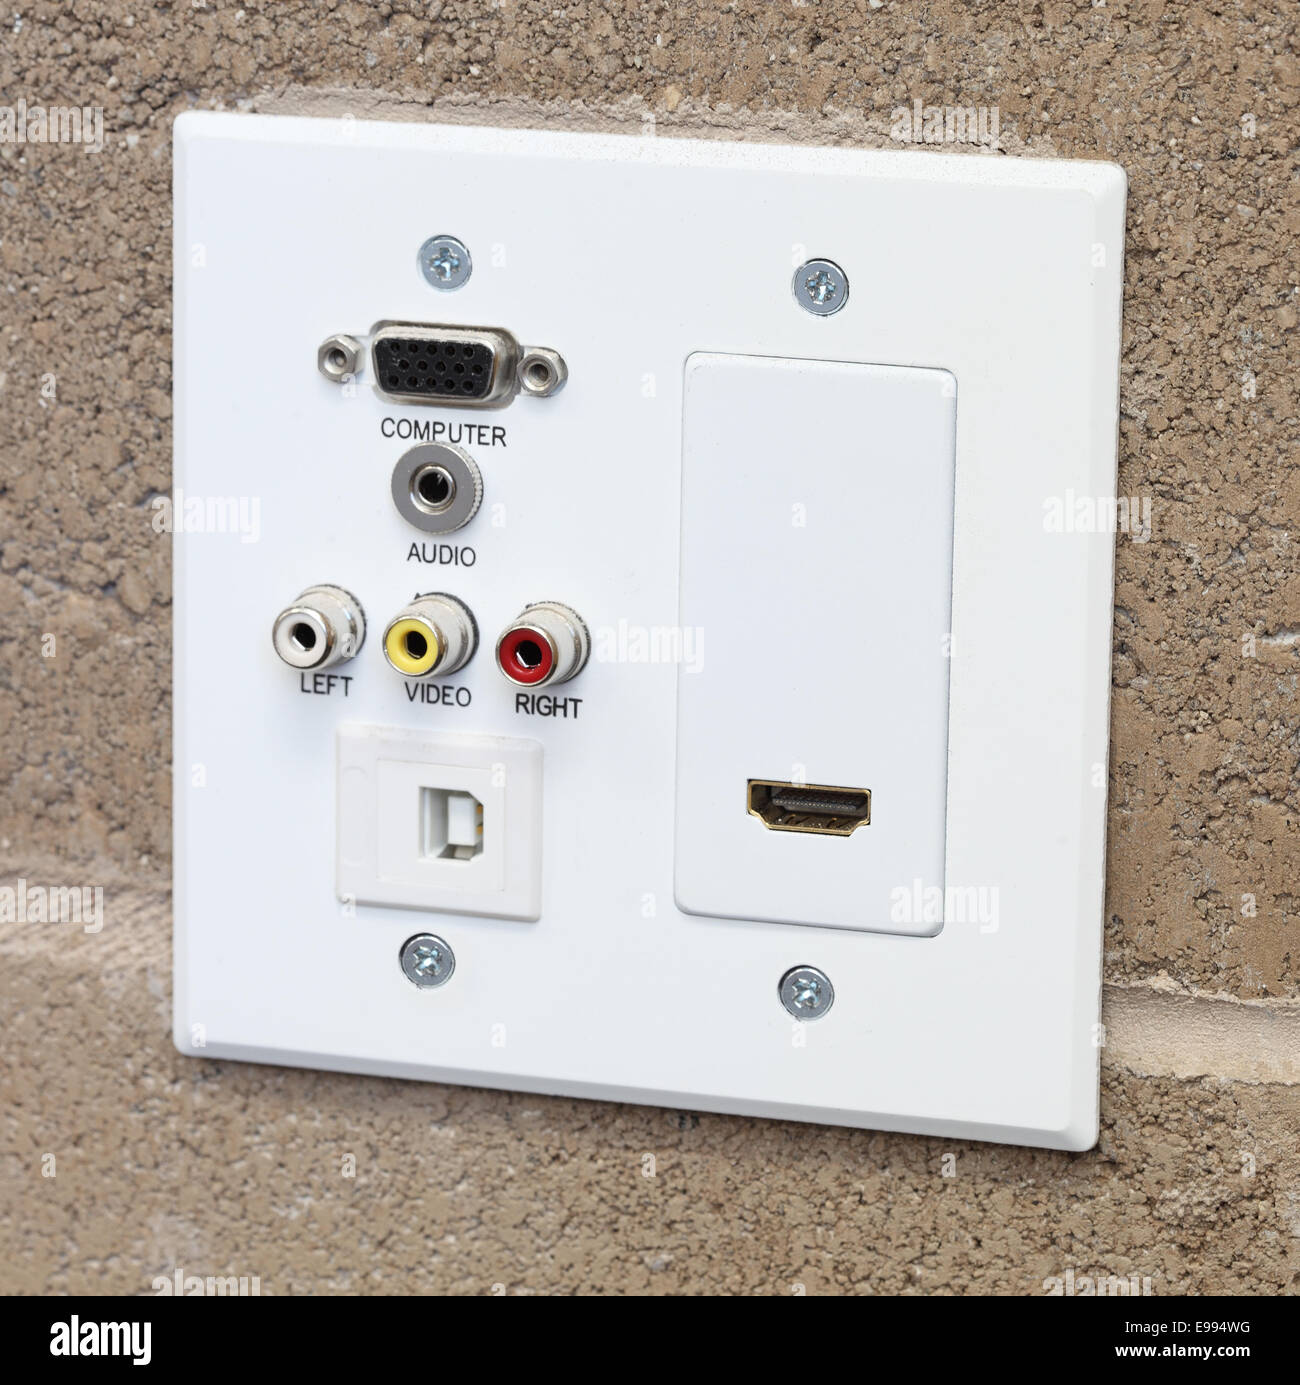 how to connect wall outlets for internet cables